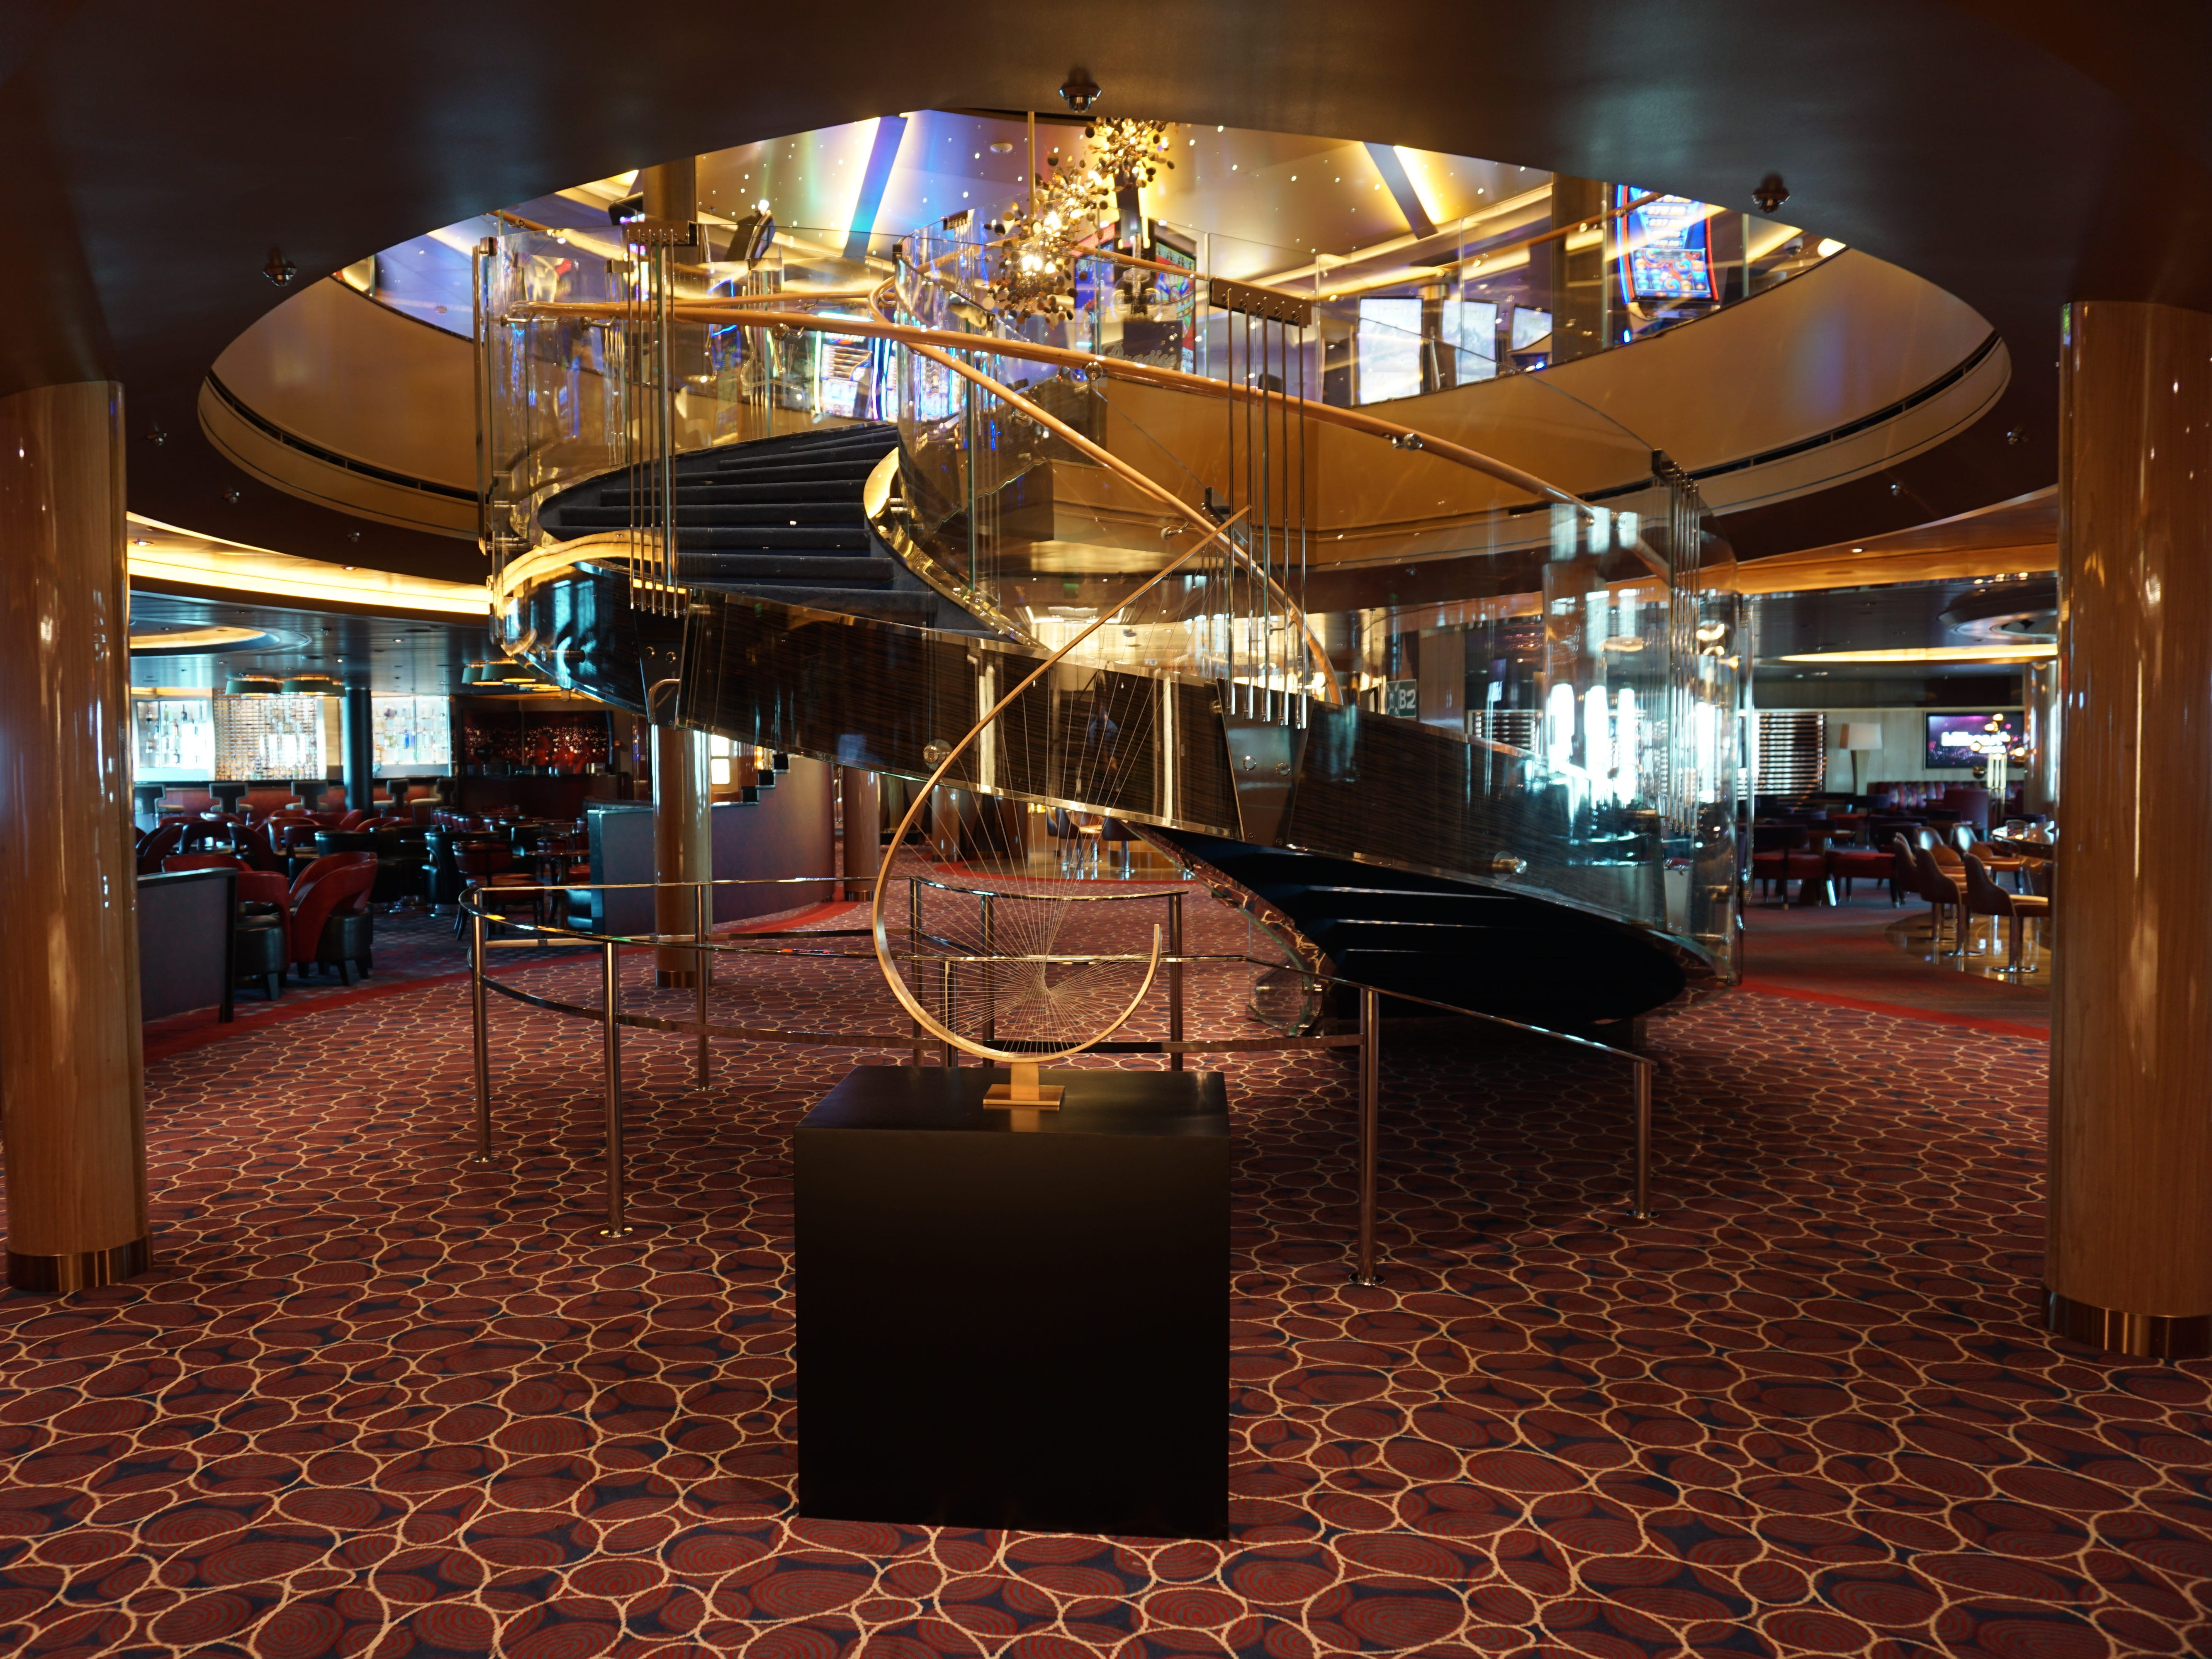 The Music Walk is a multi-faceted entertainment venue on Deck 2. A spiral staircase leading down from the Casino dominates its forward end.